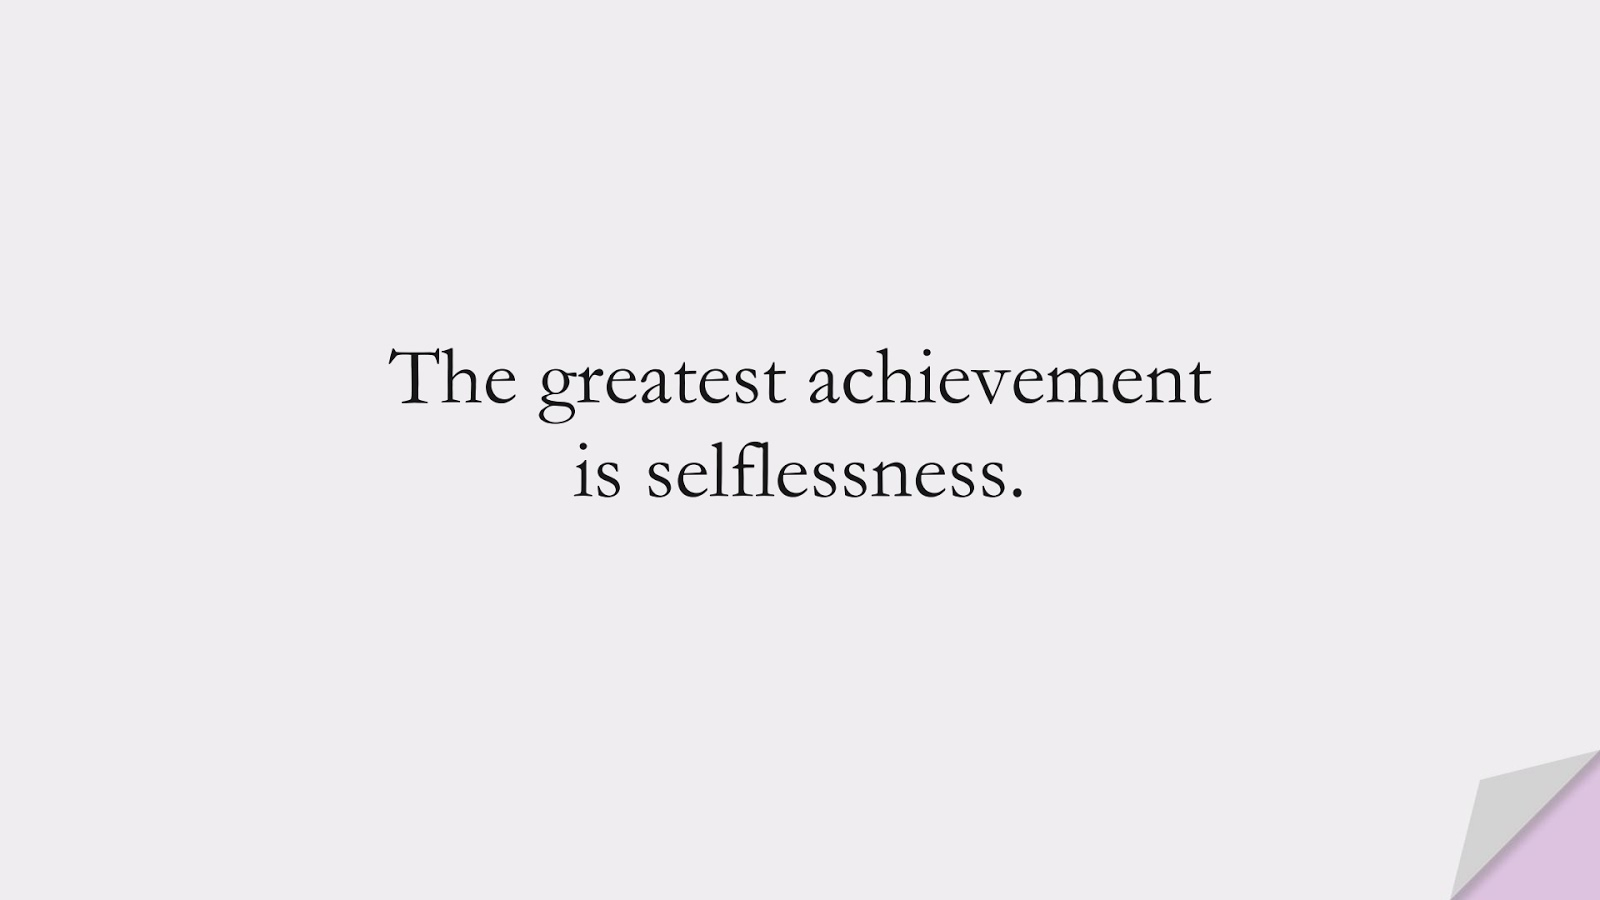 The greatest achievement is selflessness.FALSE